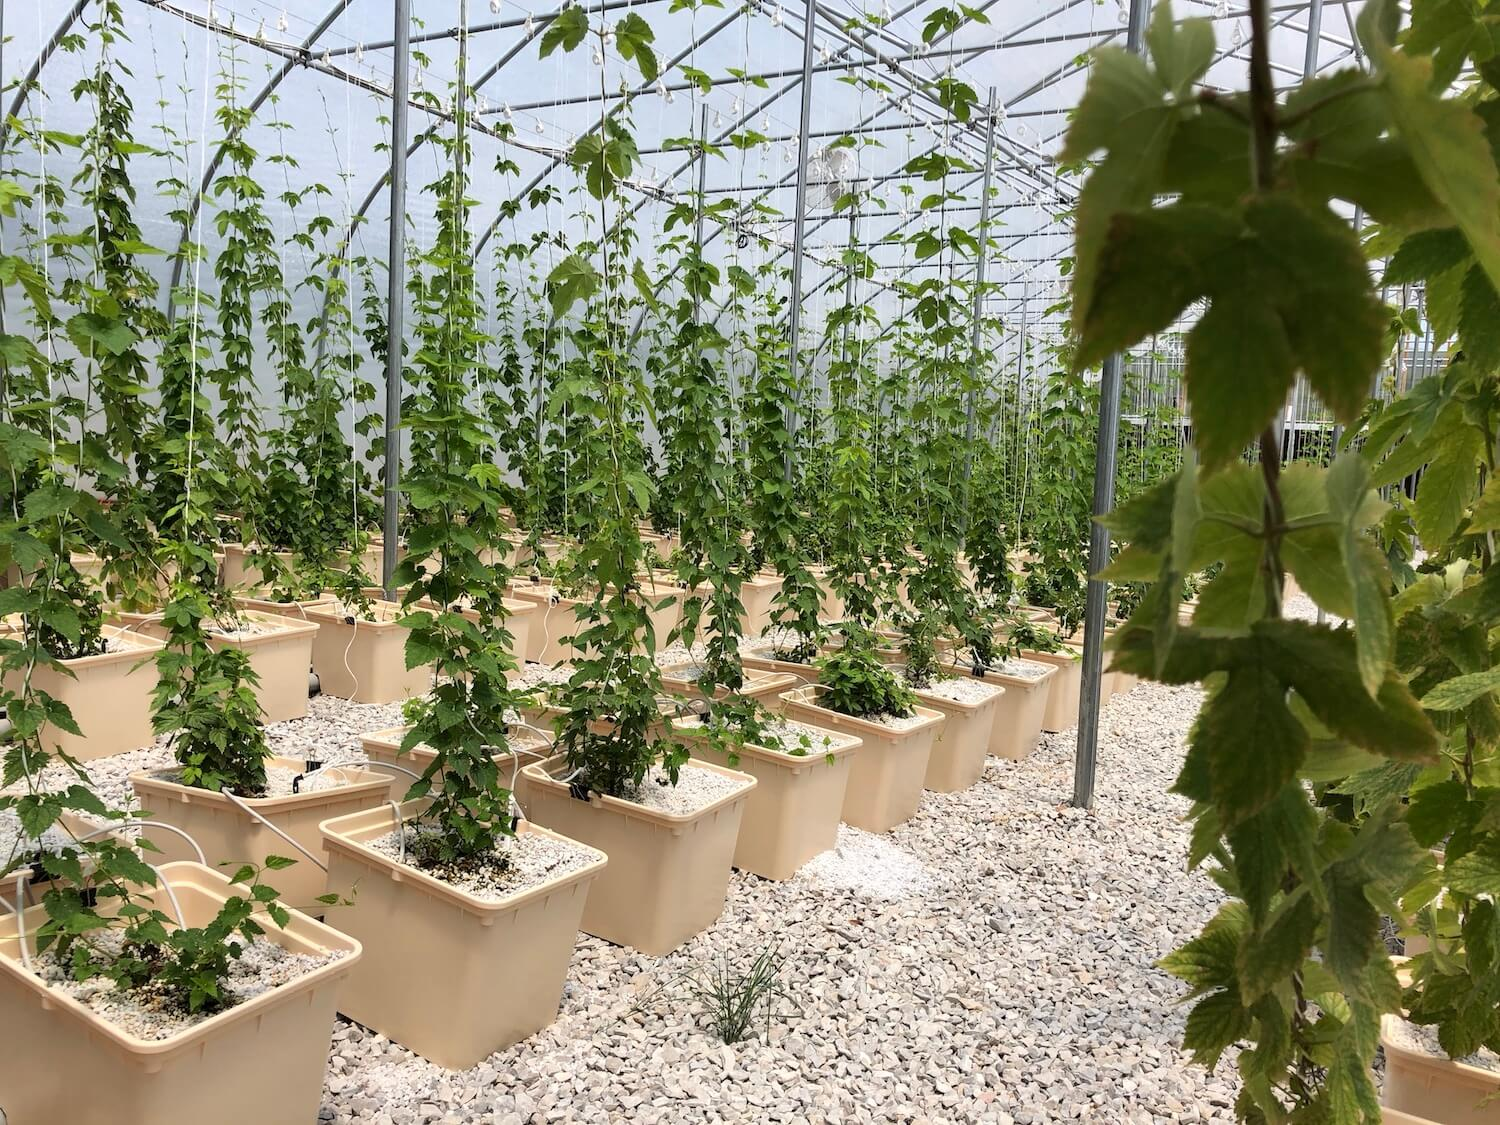 Texas hops grown hydroponically